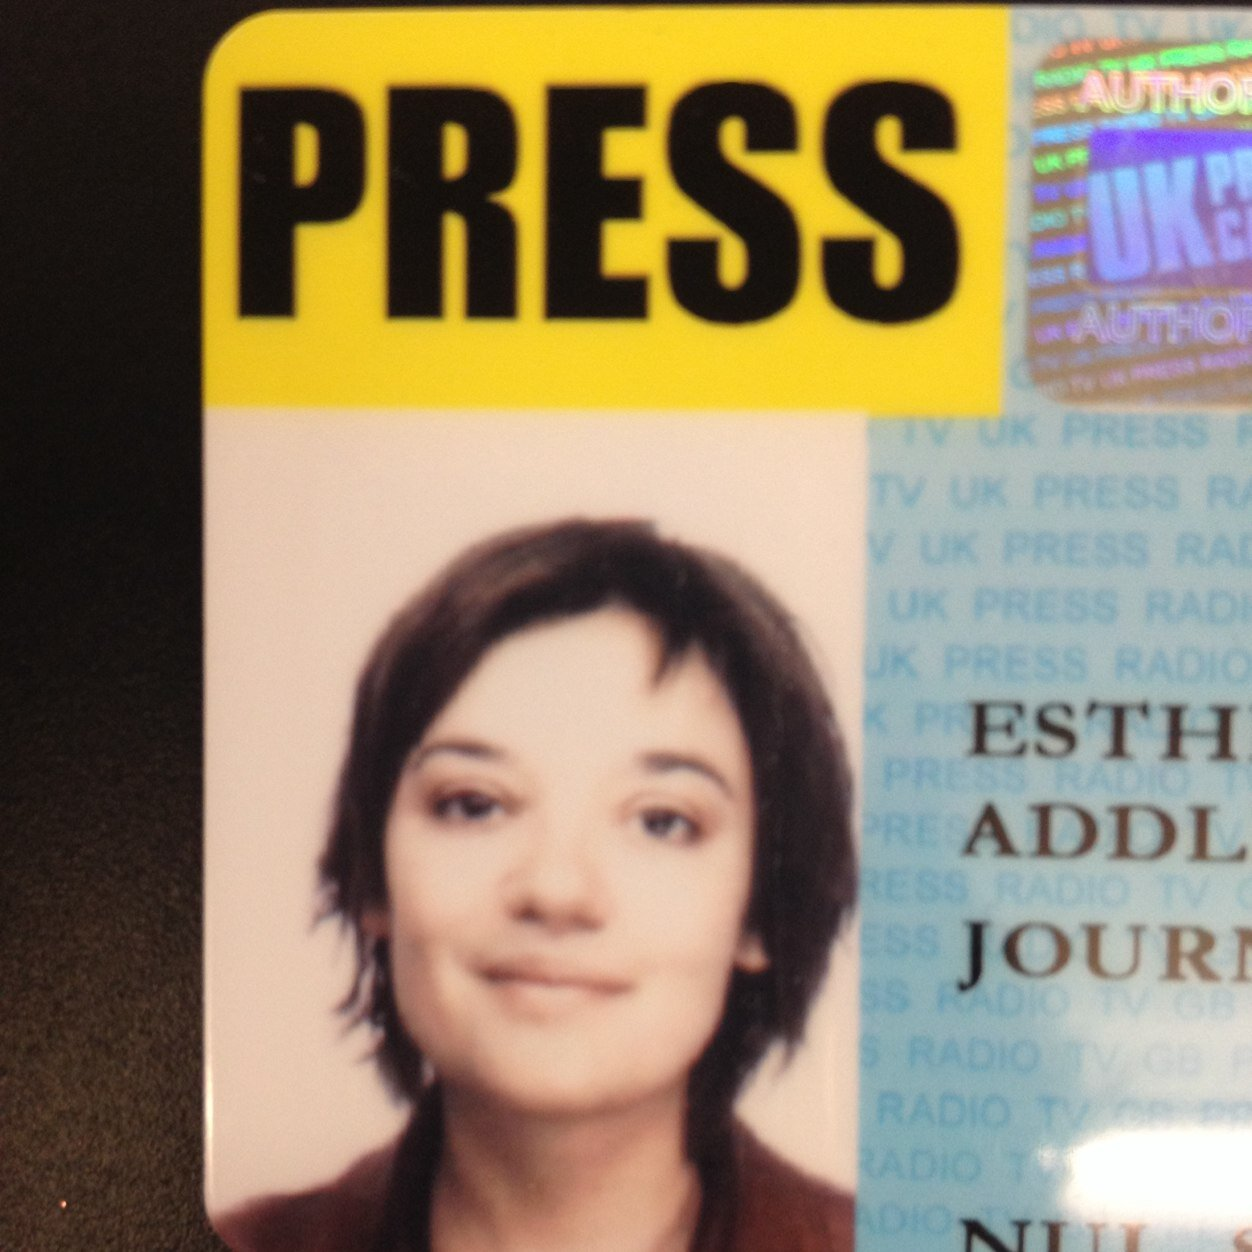 esther addley Social Profile